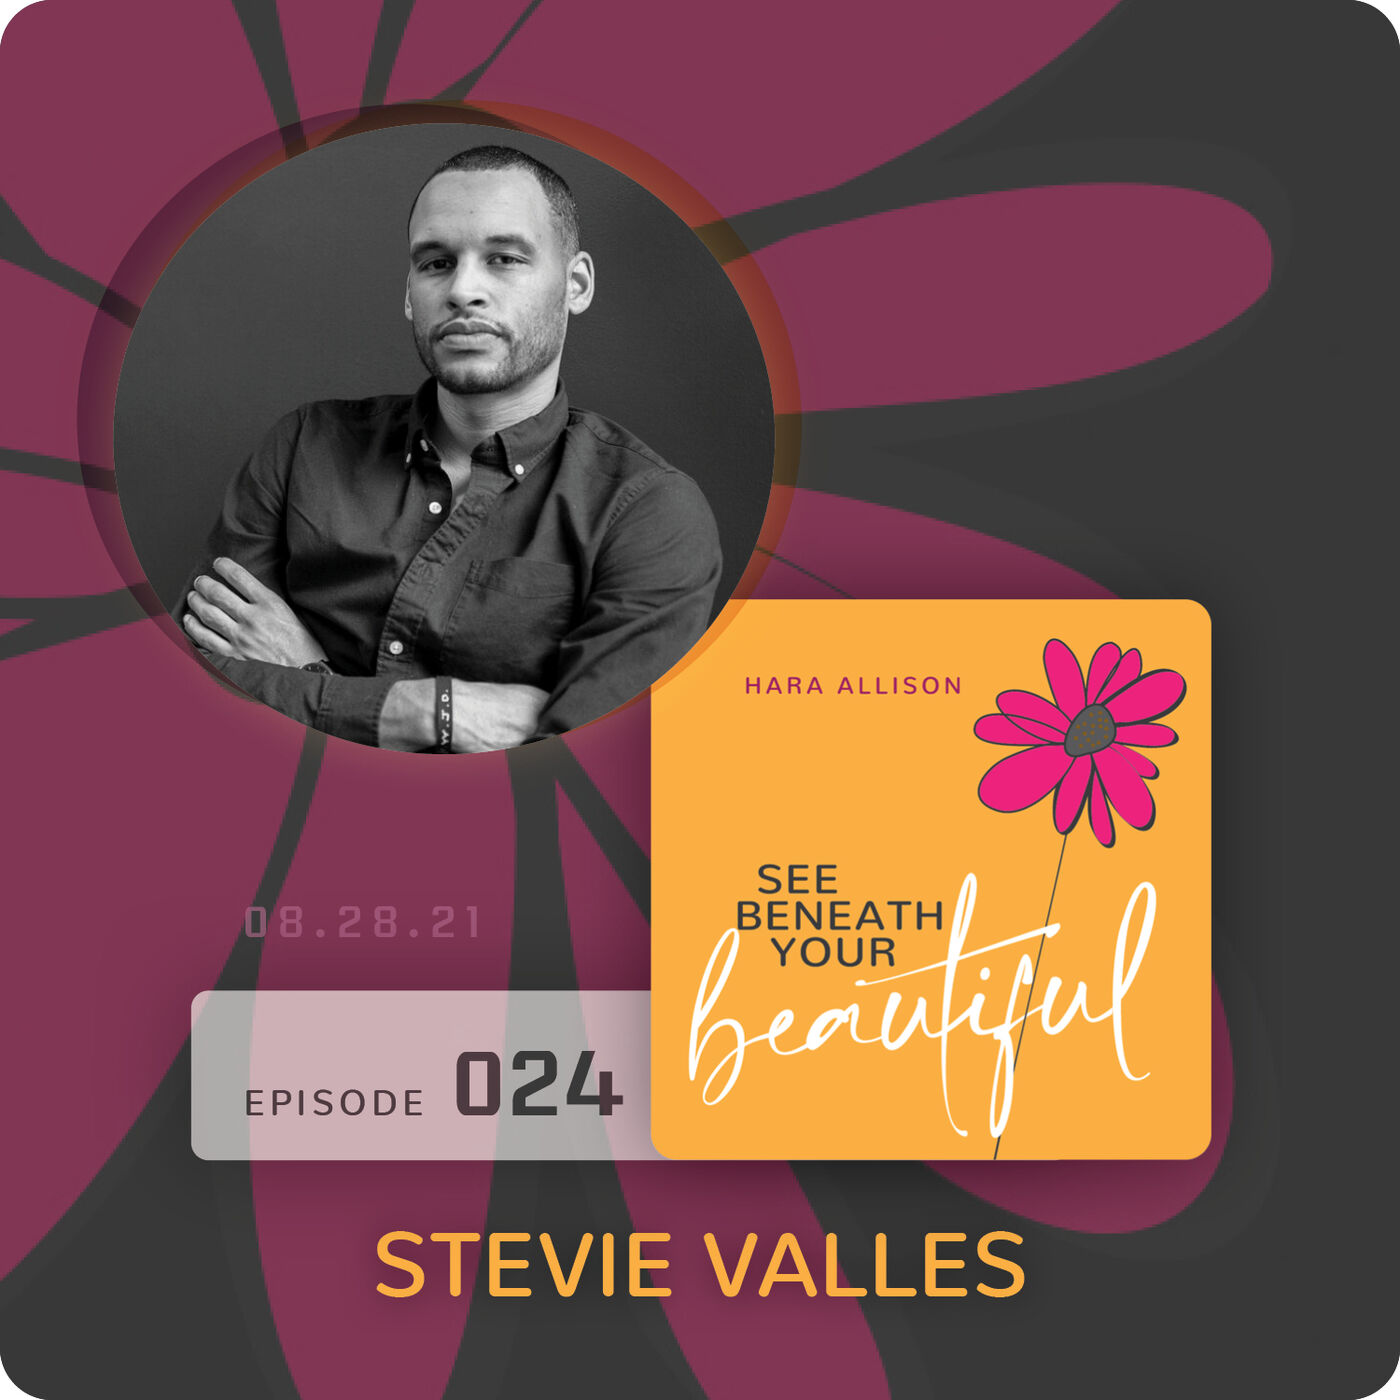 024. Stevie Valles, Executive Director of Chicago Votes, discusses giving a shit; making a difference by helping diverse youth and the disenfranchised; experiencing and overcoming racial barriers every day; and making his dad proud